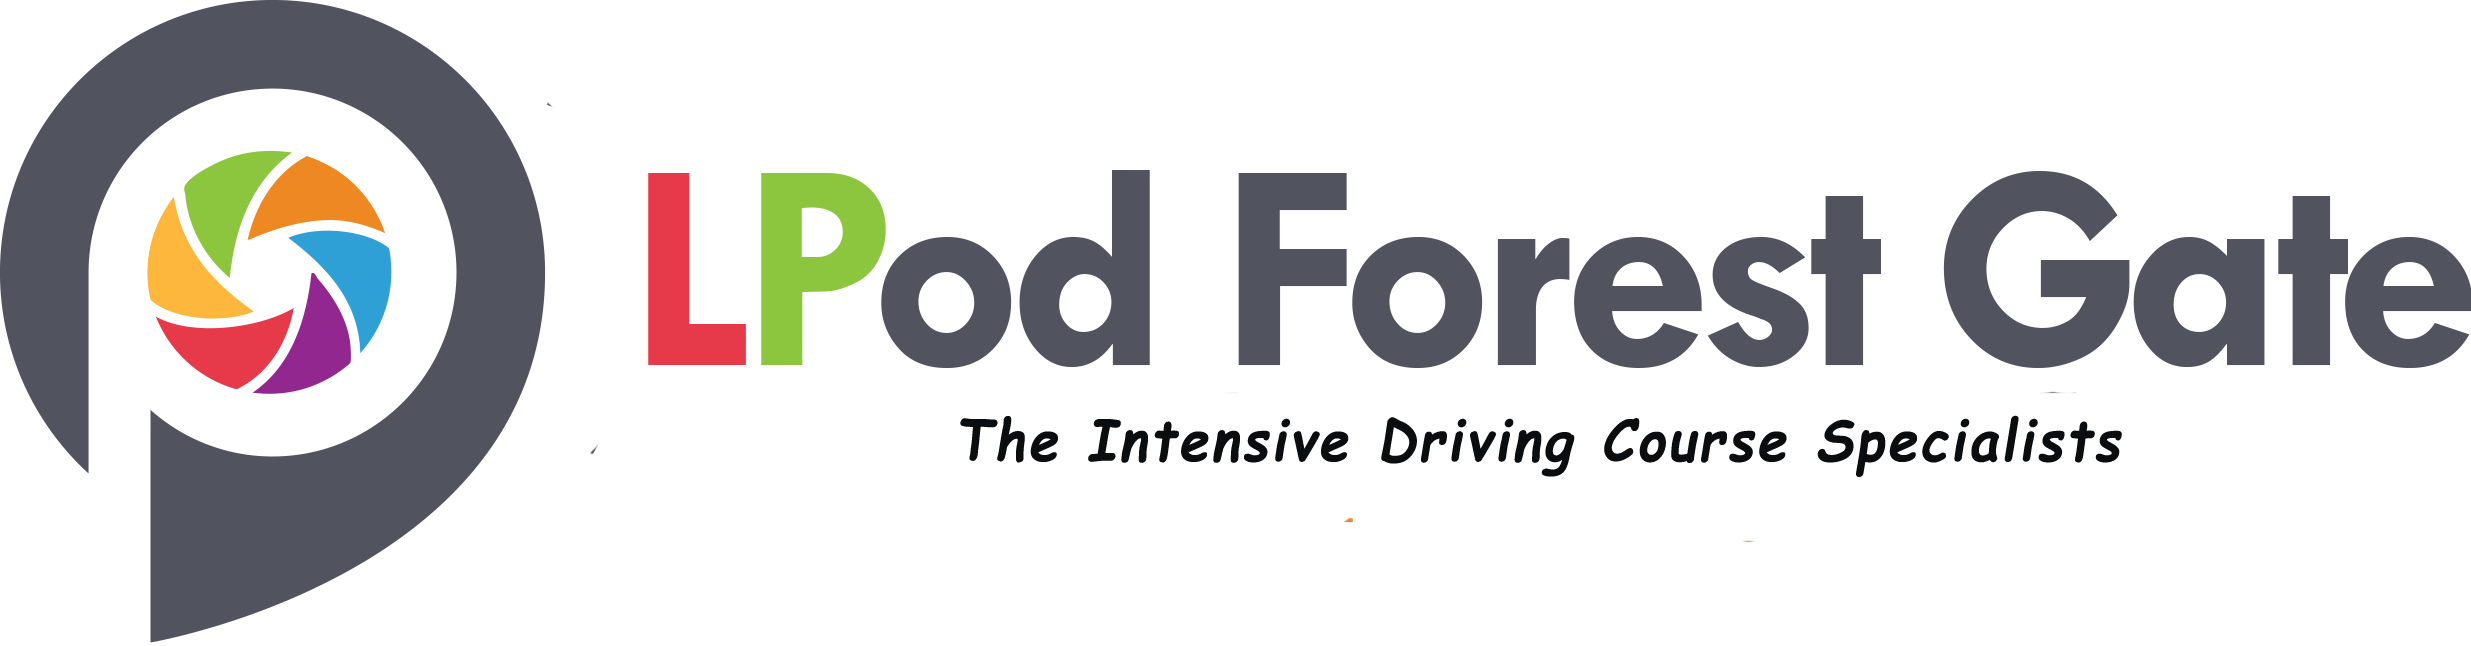 intensive driving courses Forest Gate, one week driving courses Forest Gate, fast pass driving courses Forest Gate, intensive driving course Forest Gate, driving school Forest Gate, automatic driving lessons Forest Gate, automatic courses Forest Gate, driving lessons Forest Gate